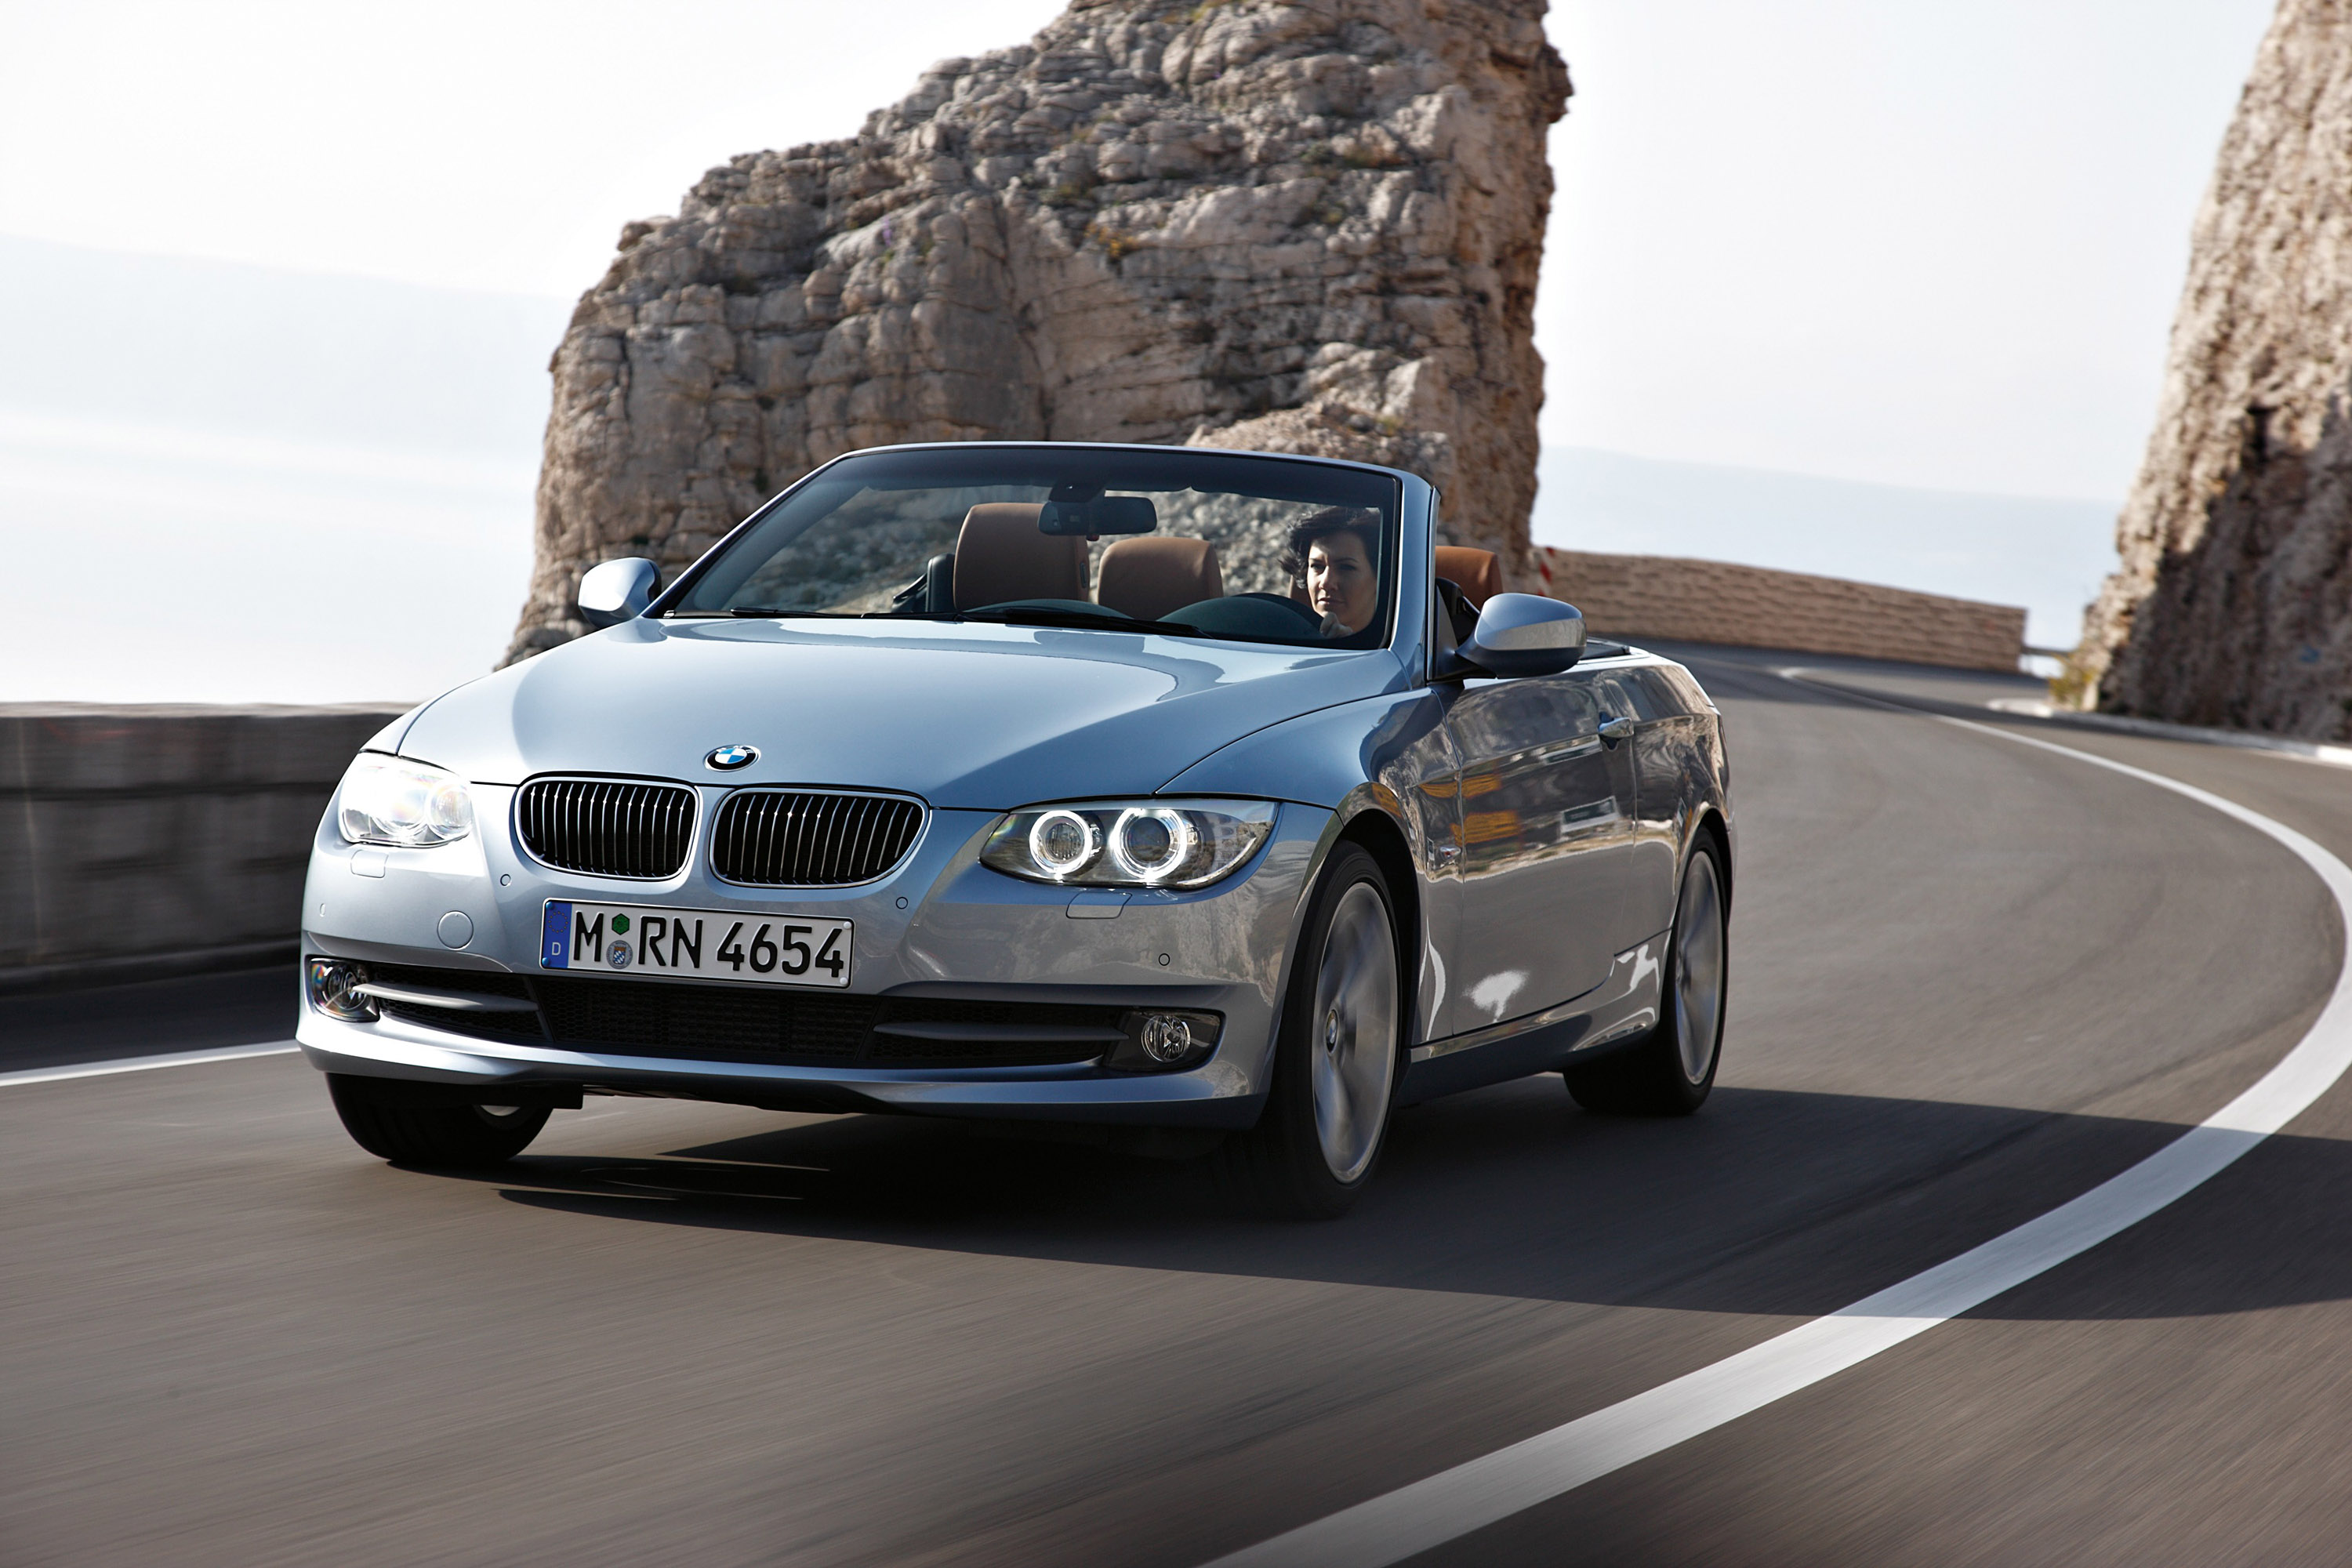 Index of /img/2011-bmw-3-series-convertible